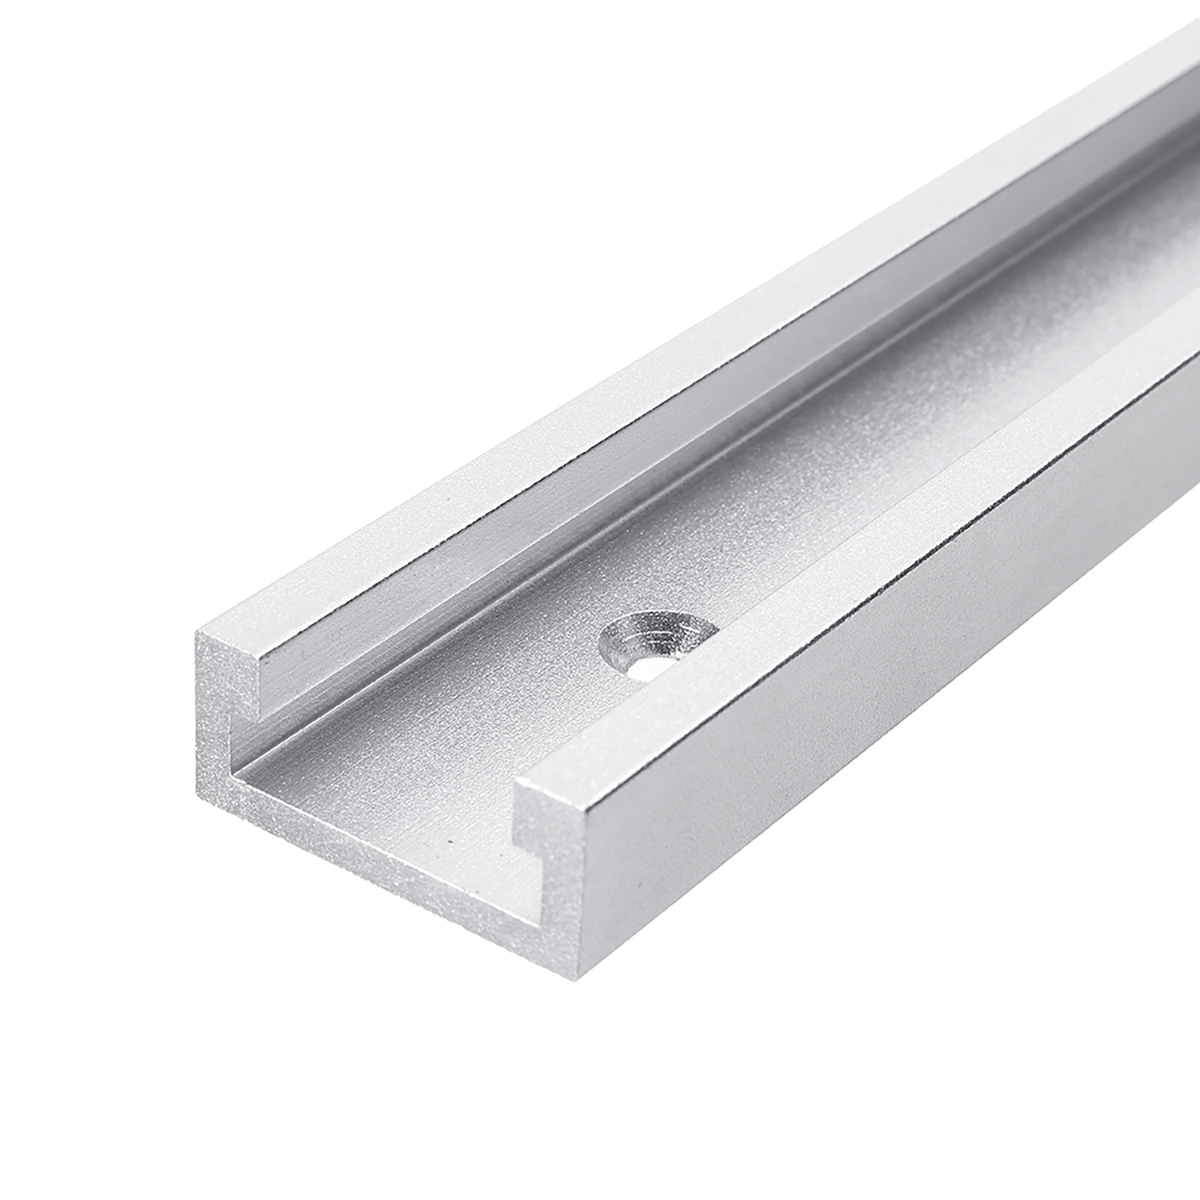 Blue 100-1200mm T-slot T-track Miter Track Jig Fixture Slot 30x12.8mm For Table